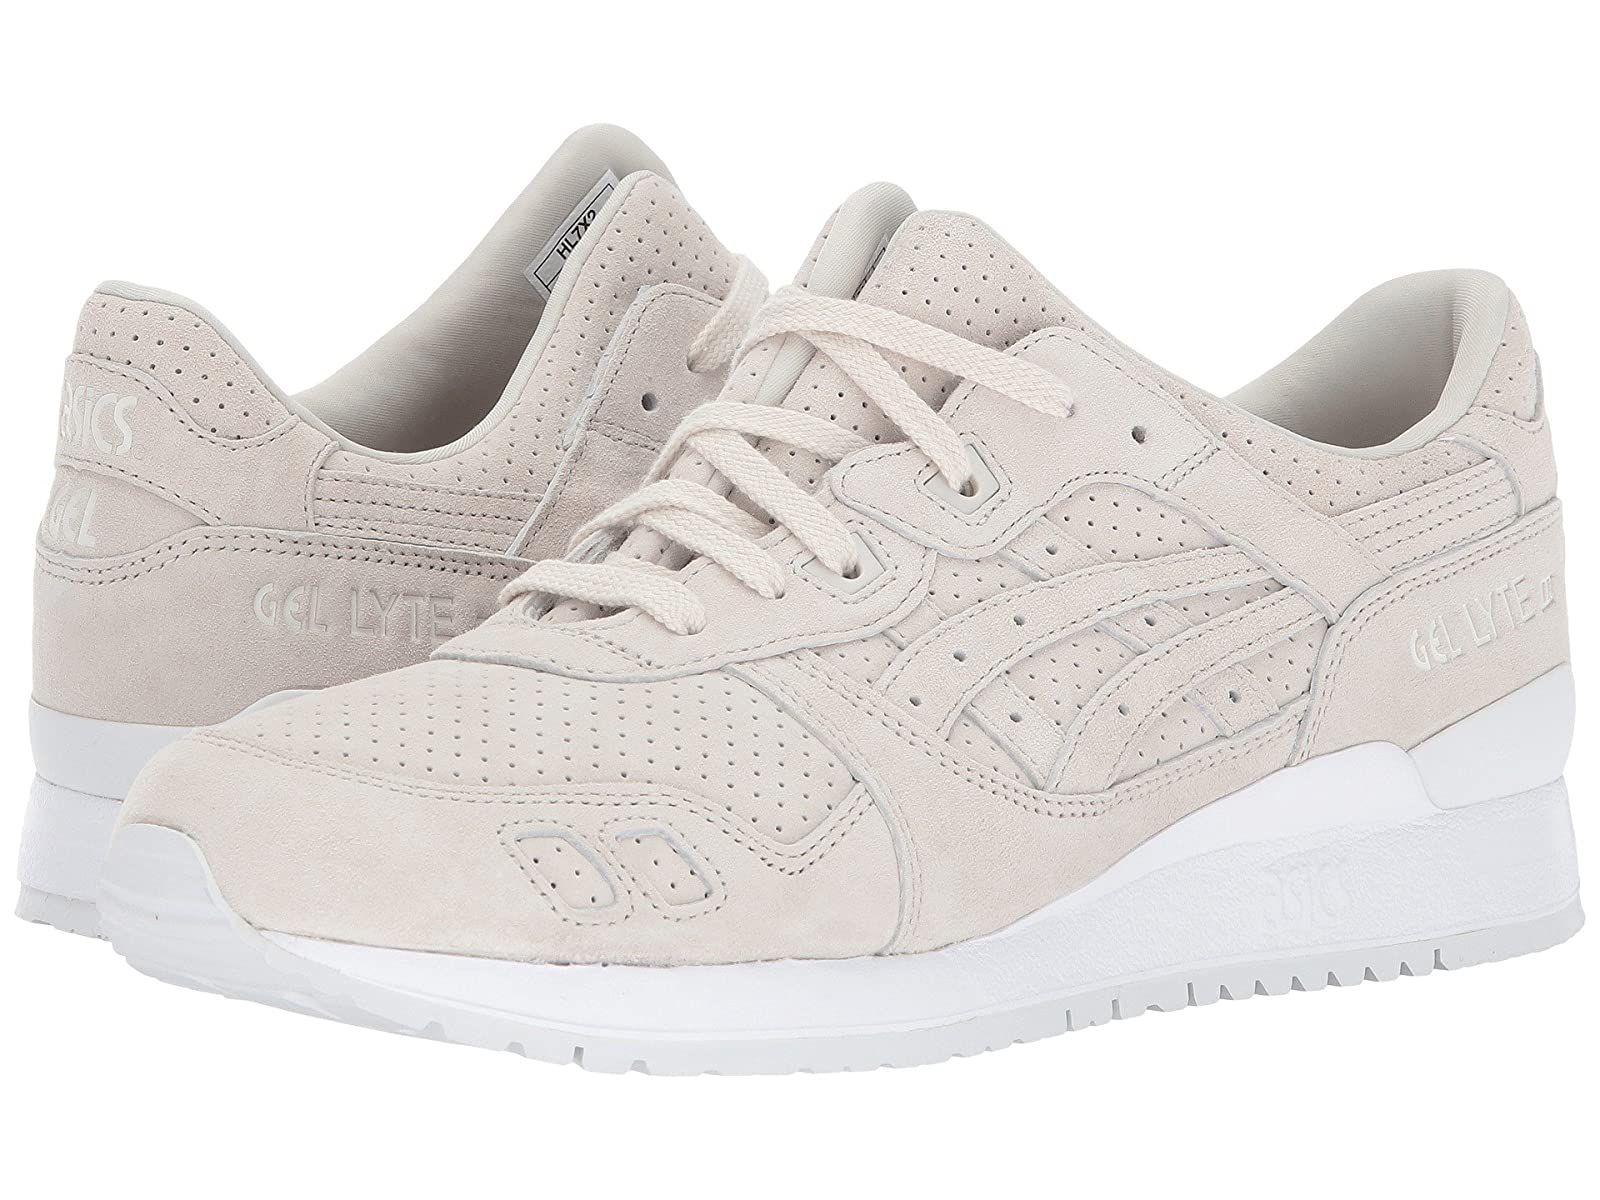 ASICS Tiger Gel-Lyte IIICheap and distinctive eye-catching shoes